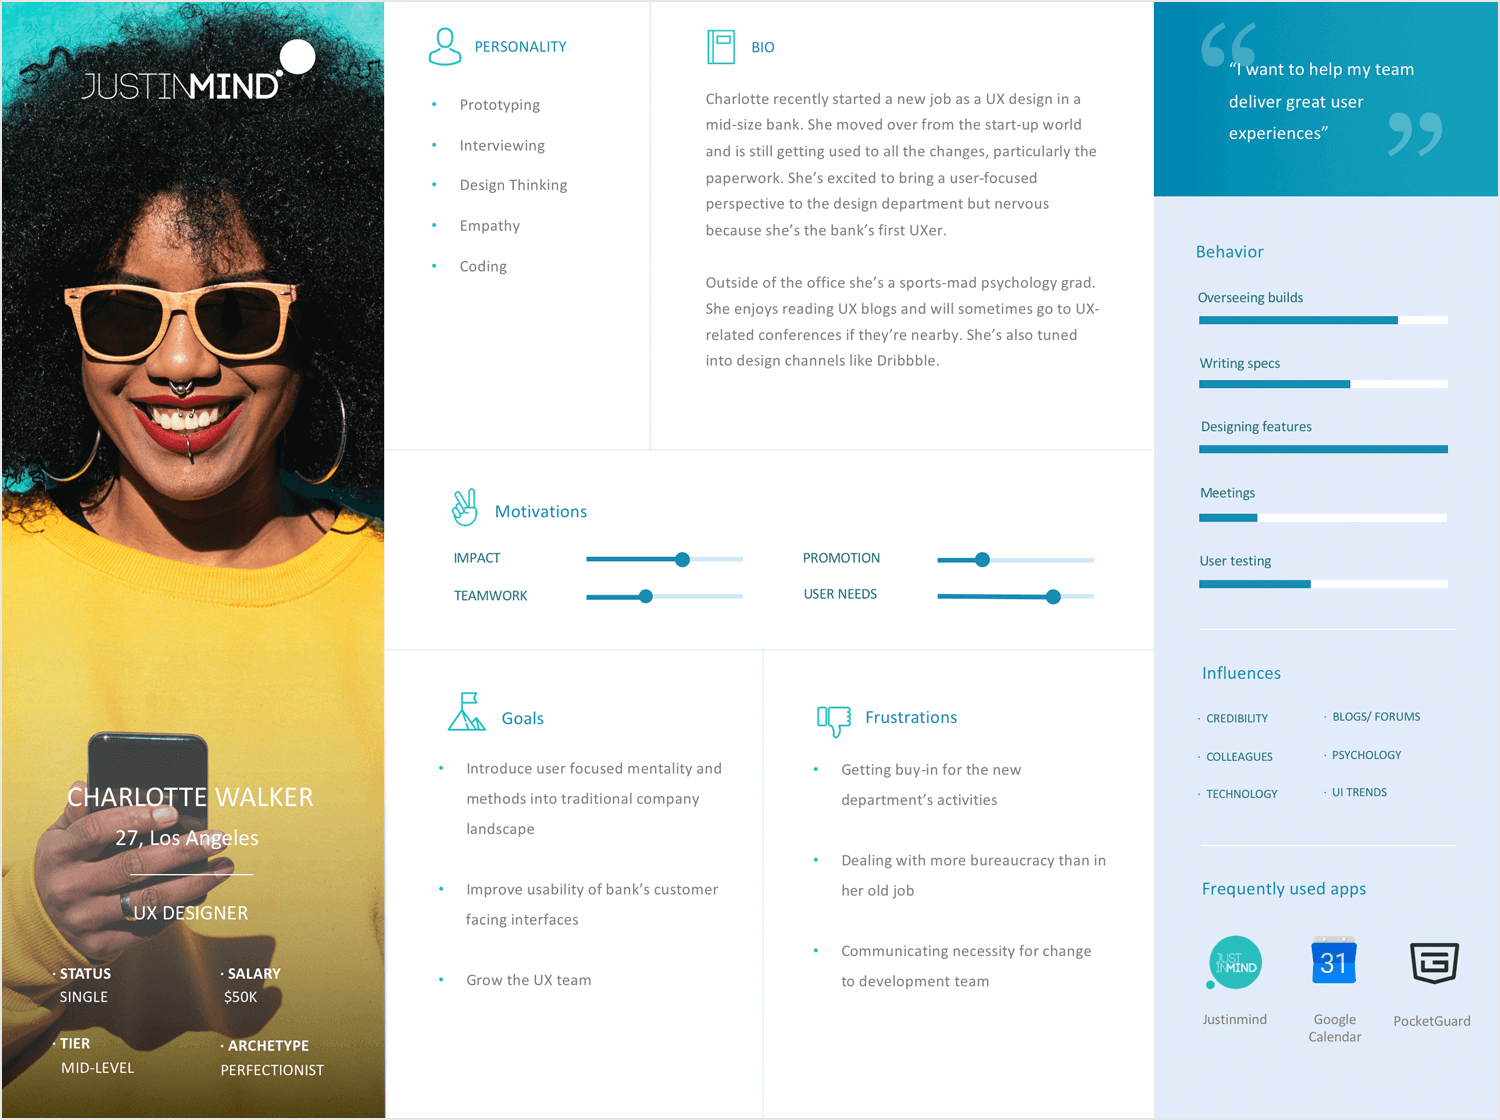 User personas - template and example from Justinmind of a UX designer